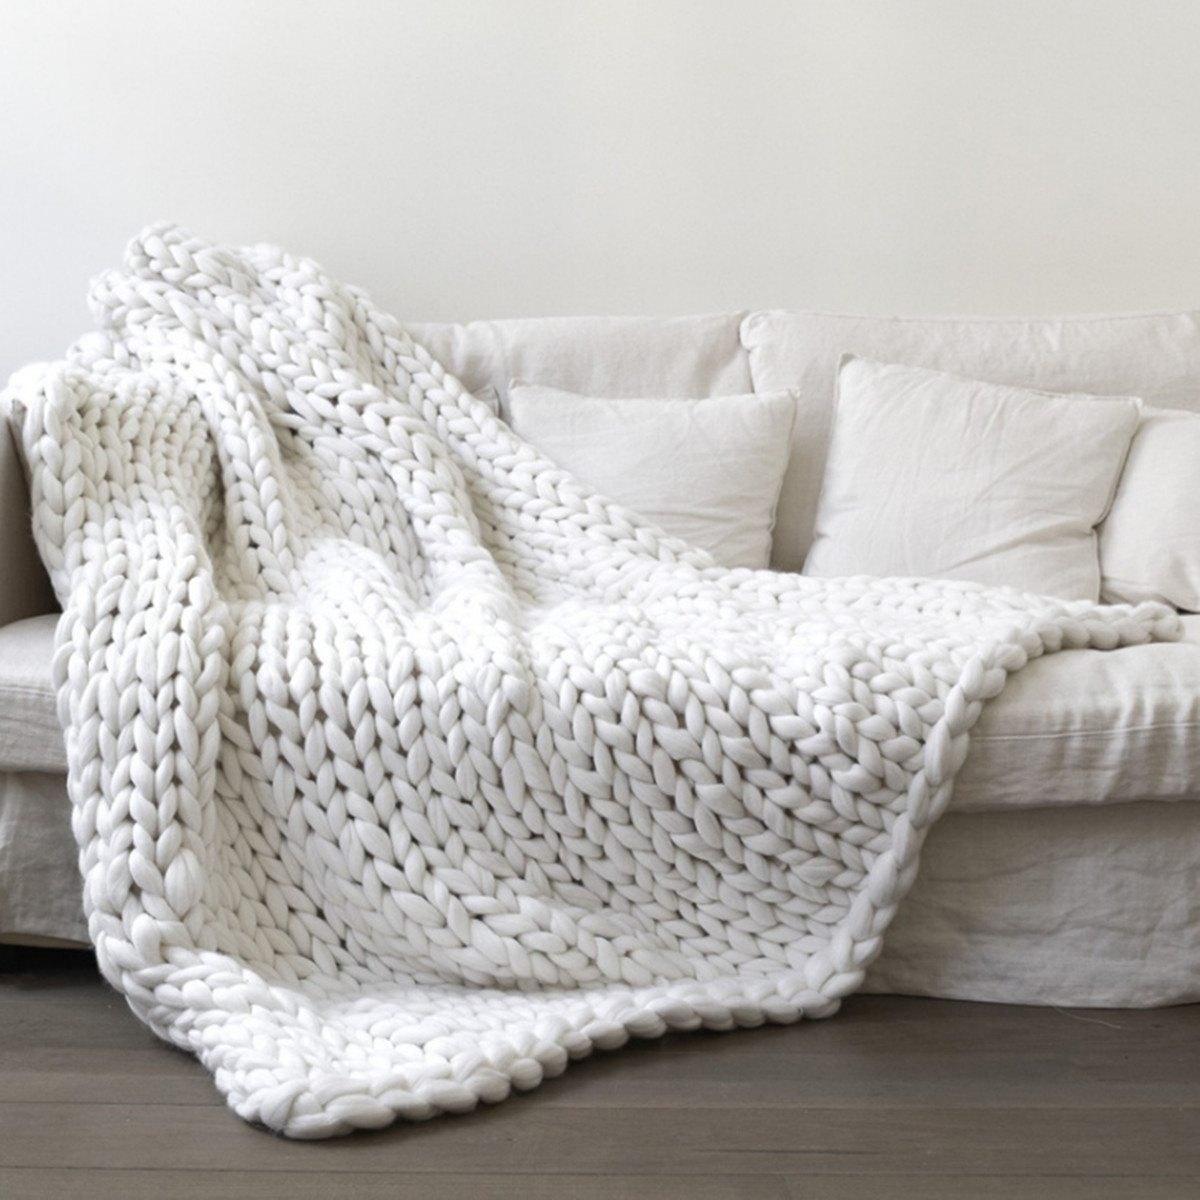 """39.4""""x47""""/39.4""""x31.5"""" Soft Hand-woven Chunky Knit Blanket Warm Hand Chunky Knit Blanket Thick Yarn Bulky Bed Spread Throw 7 Colors"""